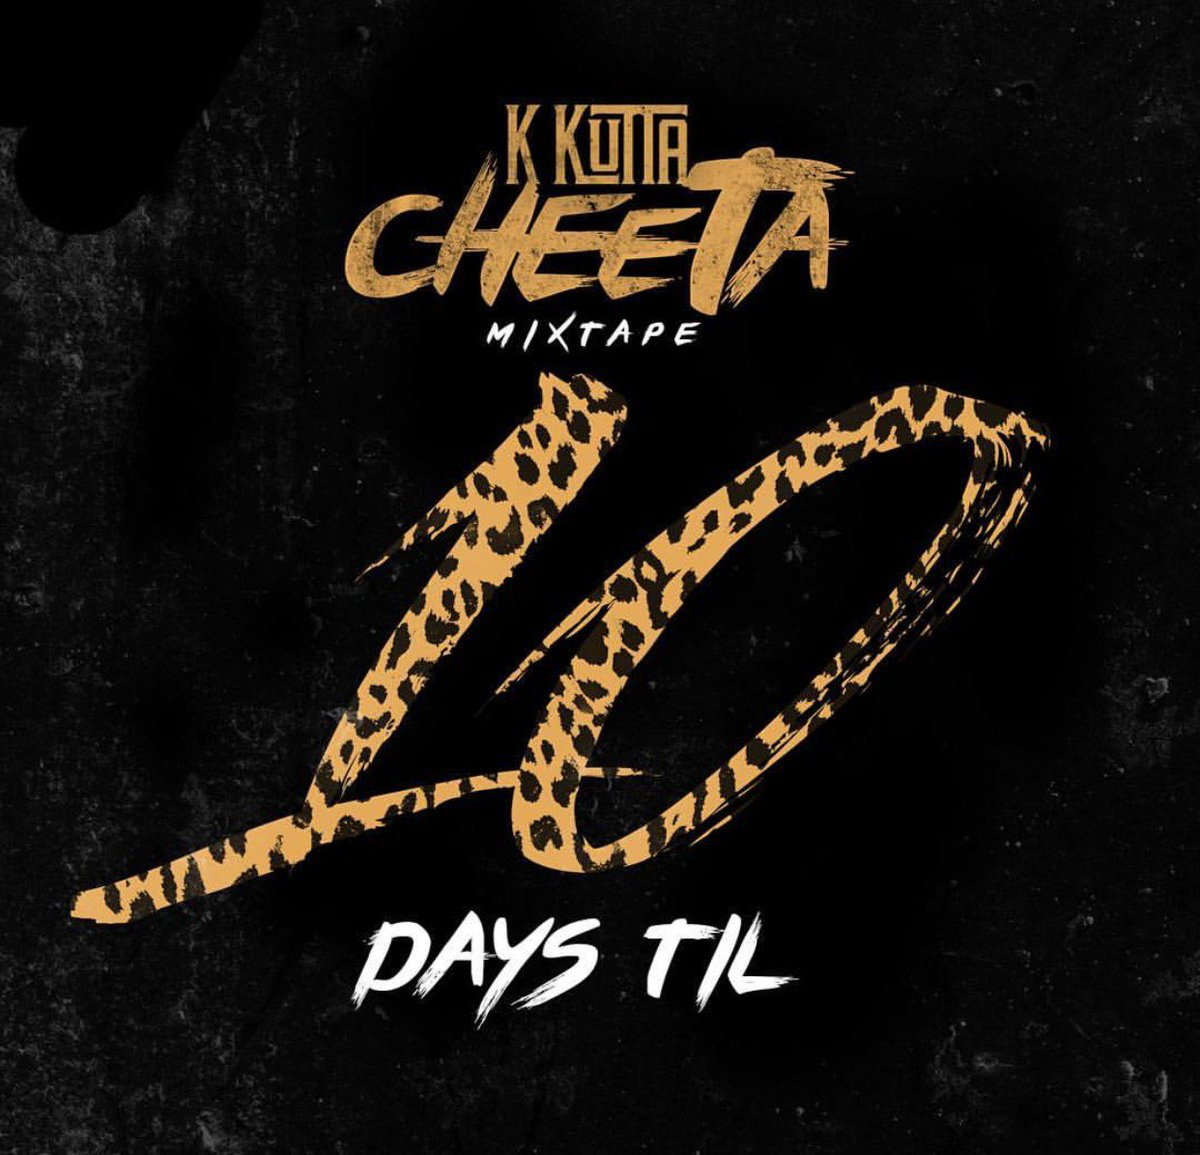 NEW @miamikkutta https://t.co/hLye9xlFDT #CheetaBoy drops March 17th! https://t.co/suIYGOR3Ud